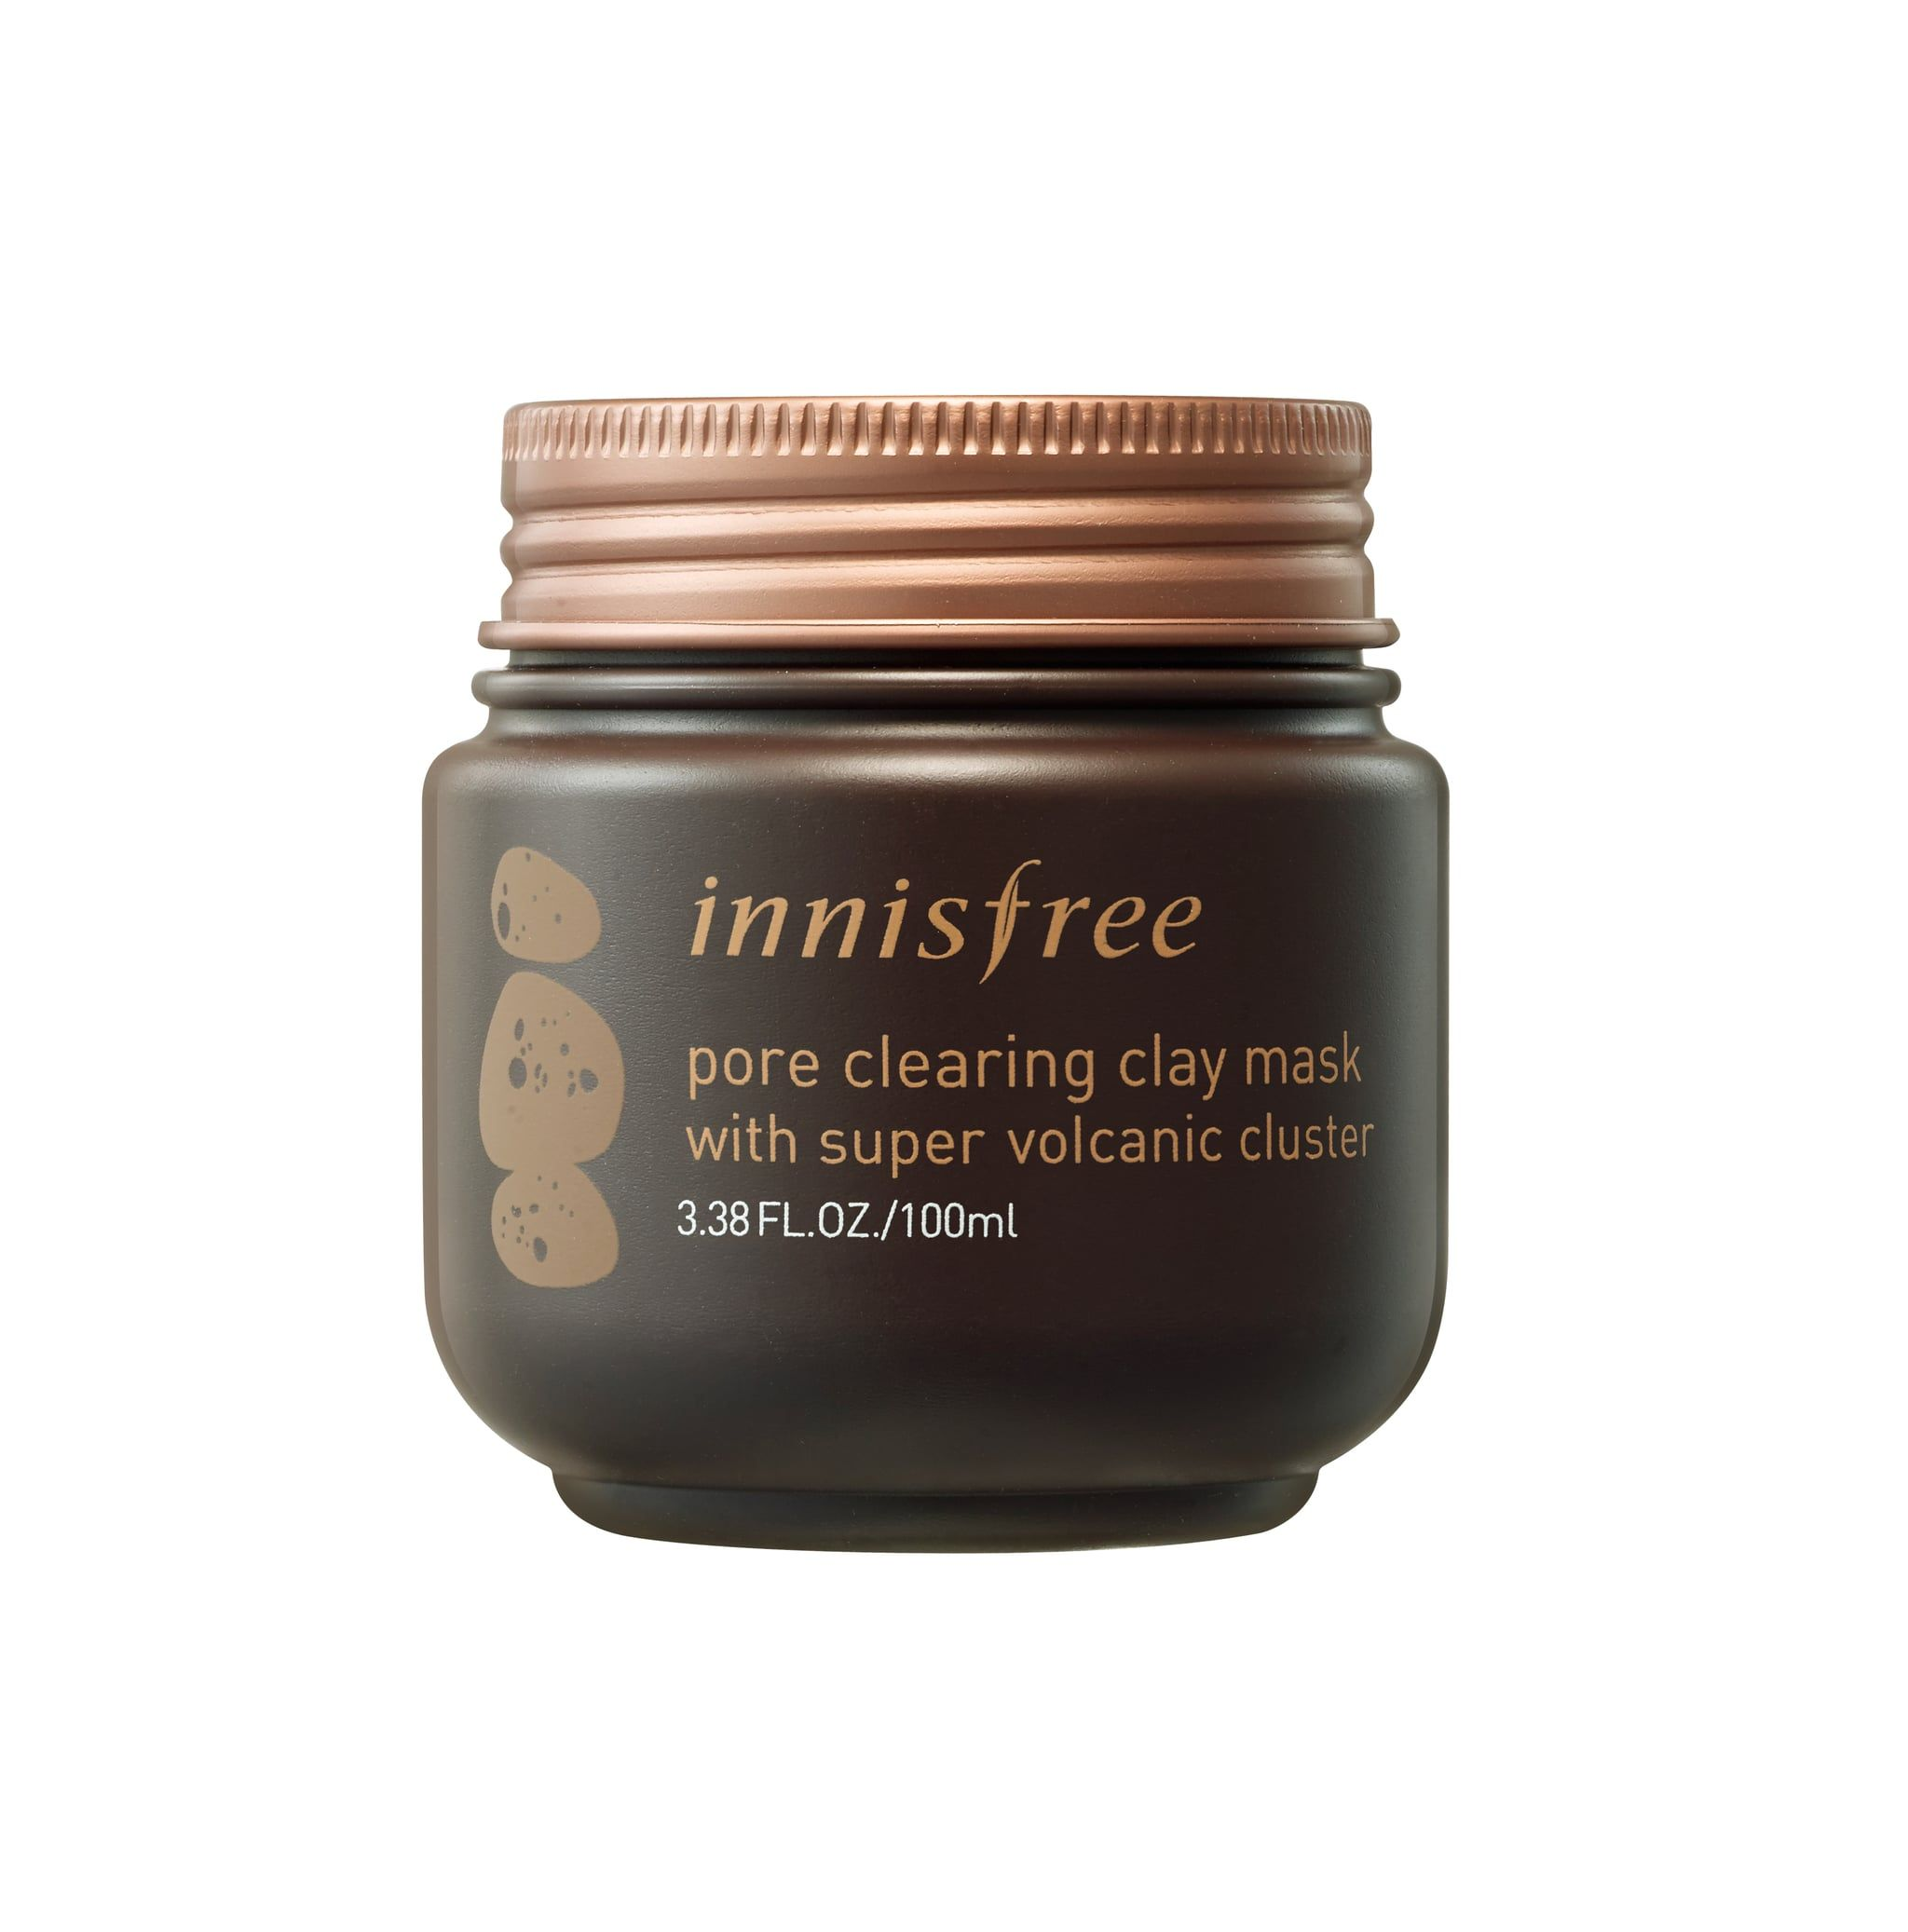 Innisfree - Pore Clearing Clay Mask with Super Volcanic Clusters